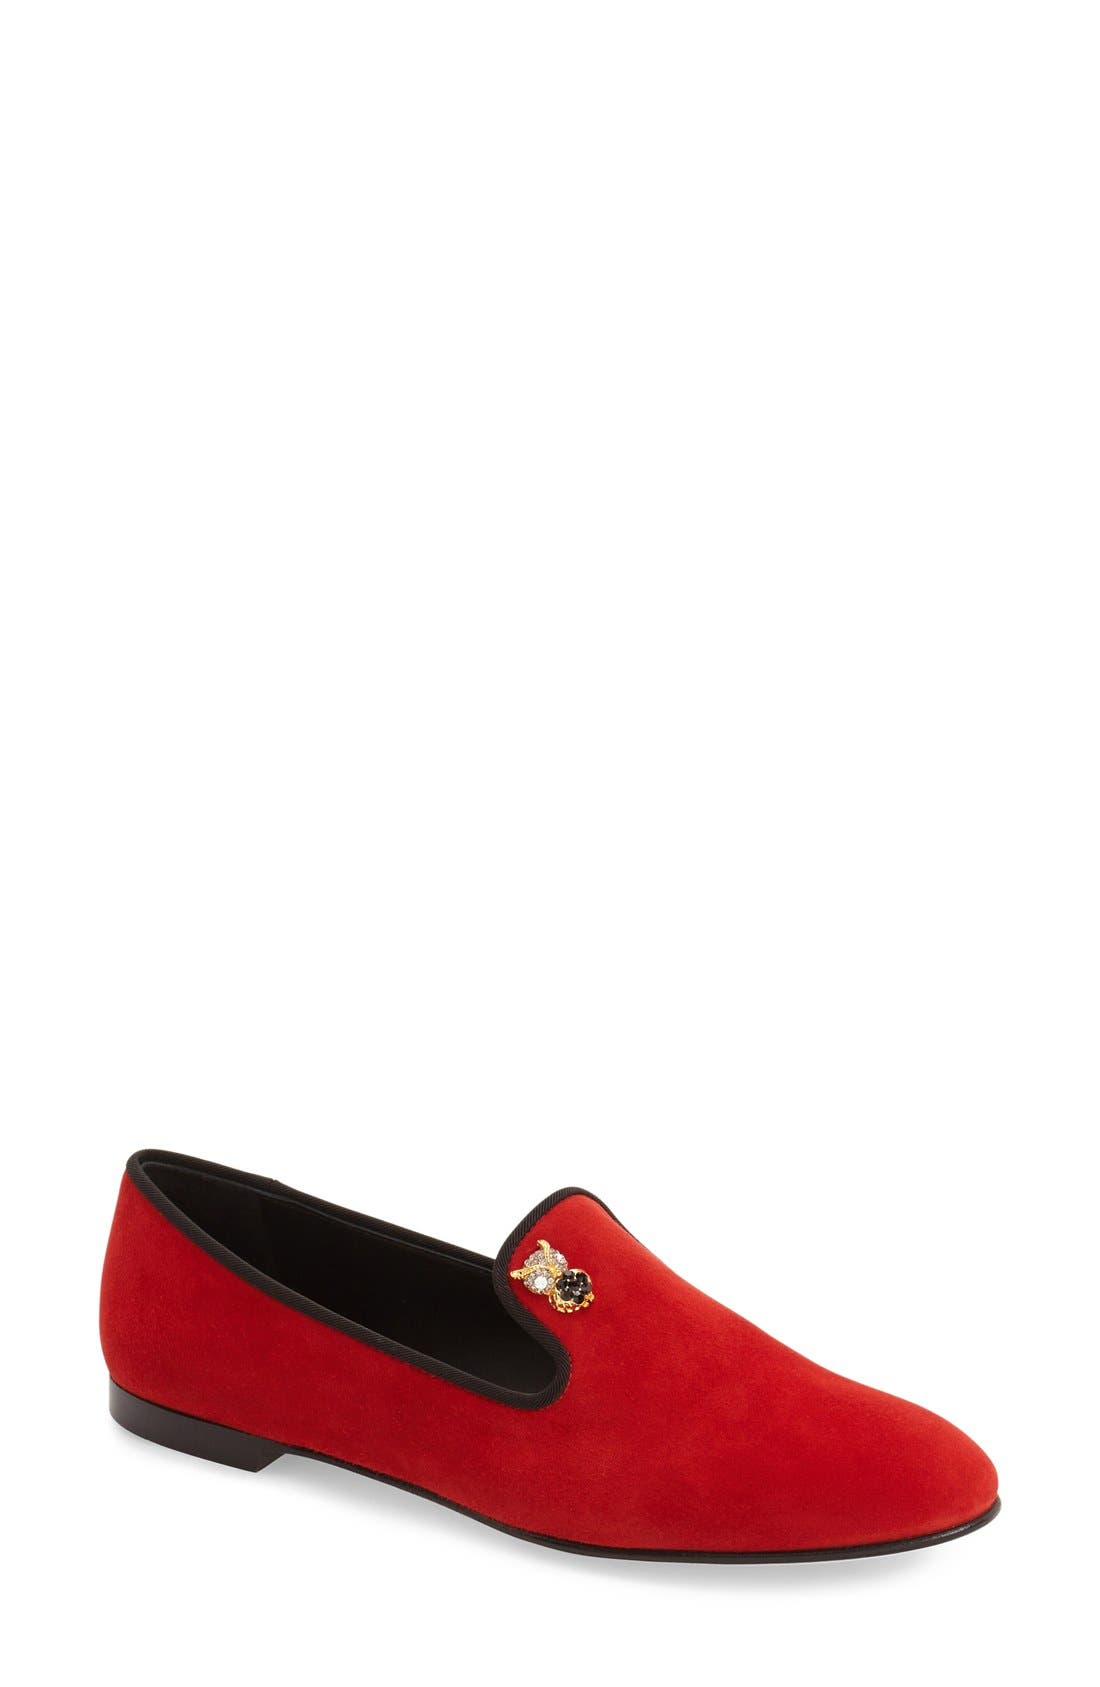 Alternate Image 1 Selected - Giuseppe Zanotti 'Dalila' Loafer (Women) (Nordstrom Exclusive)